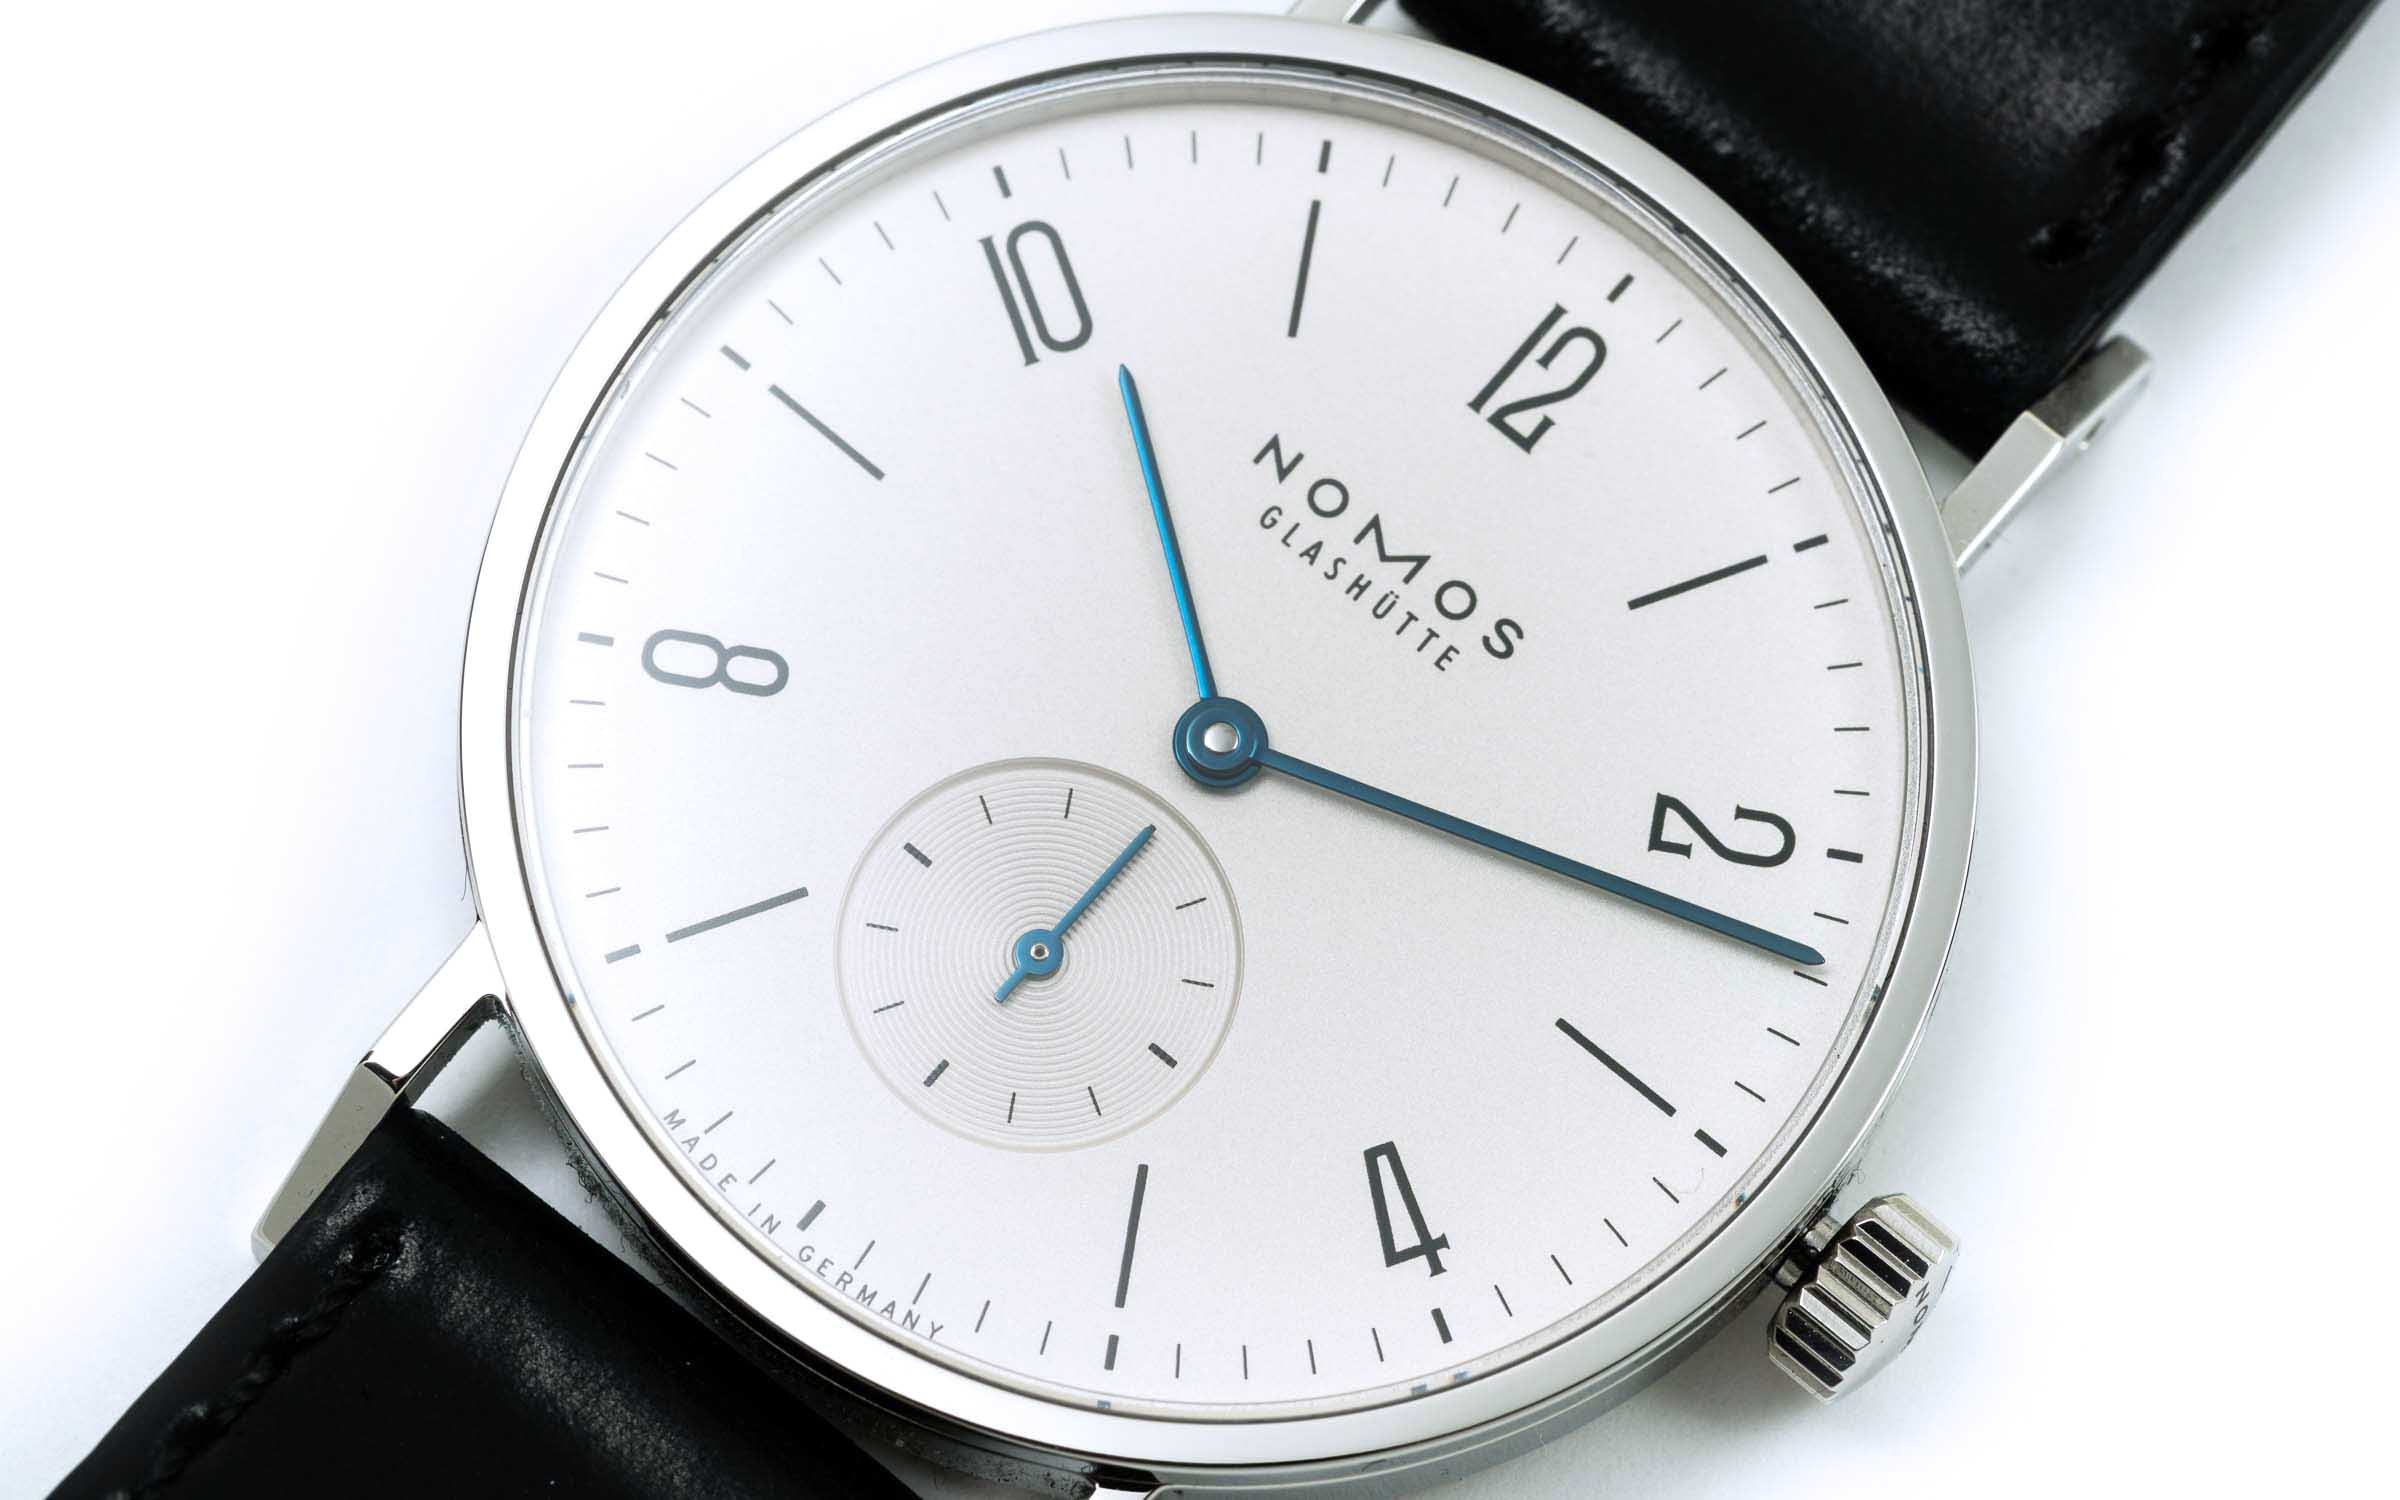 From marco.org: a Nomos mechanical watch